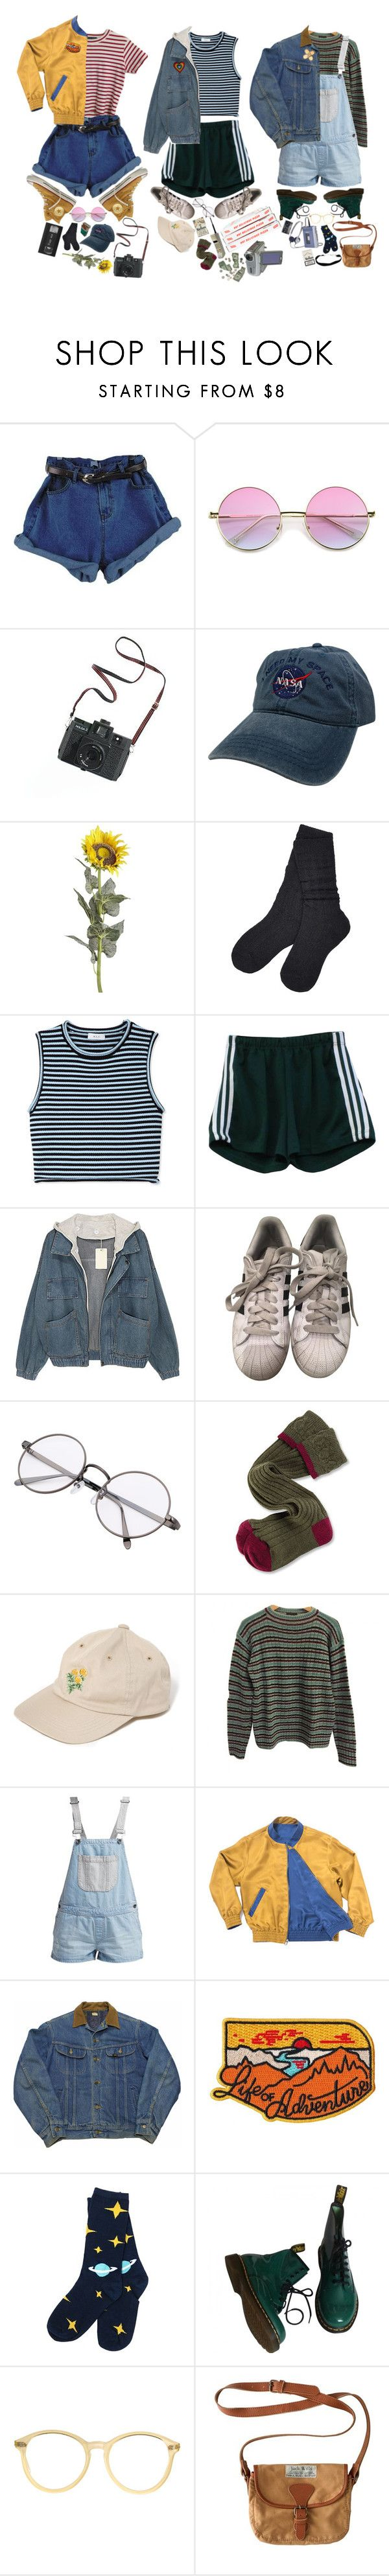 """""""80's s q u a d"""" by cosmic-calum ❤ liked on Polyvore featuring Converse, ZeroUV, Madewell, Pier 1 Imports, UGG, A.L.C., adidas, Barbour, American Apparel and Prada"""